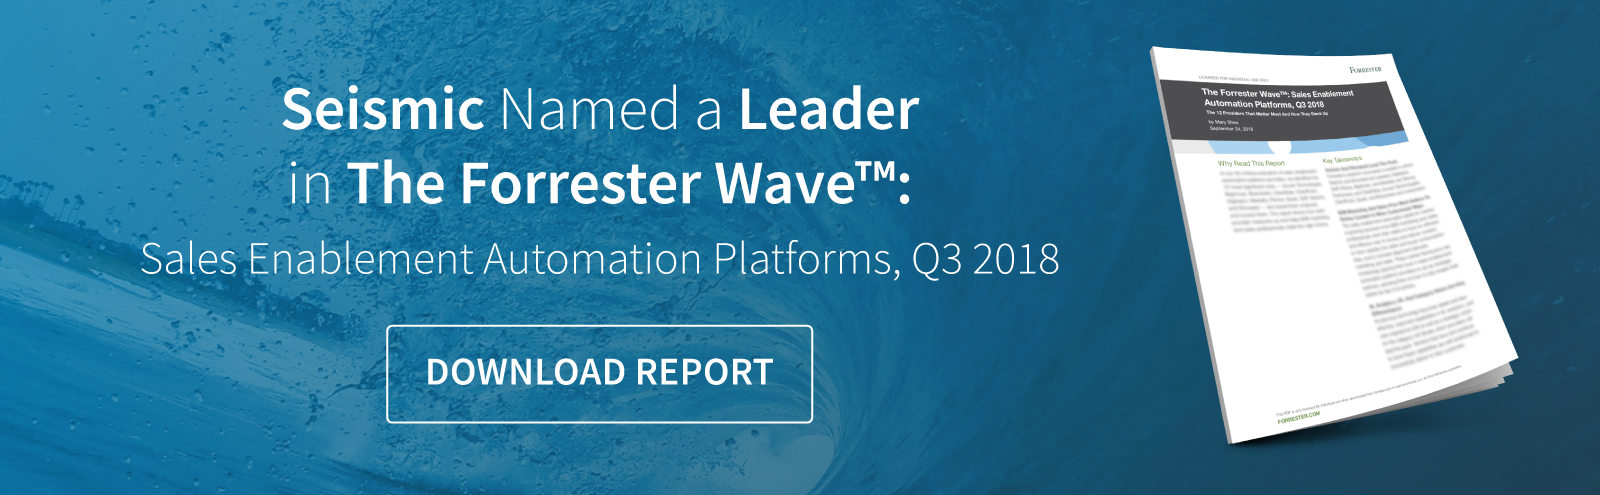 Seismic-Forrester-Wave-Report